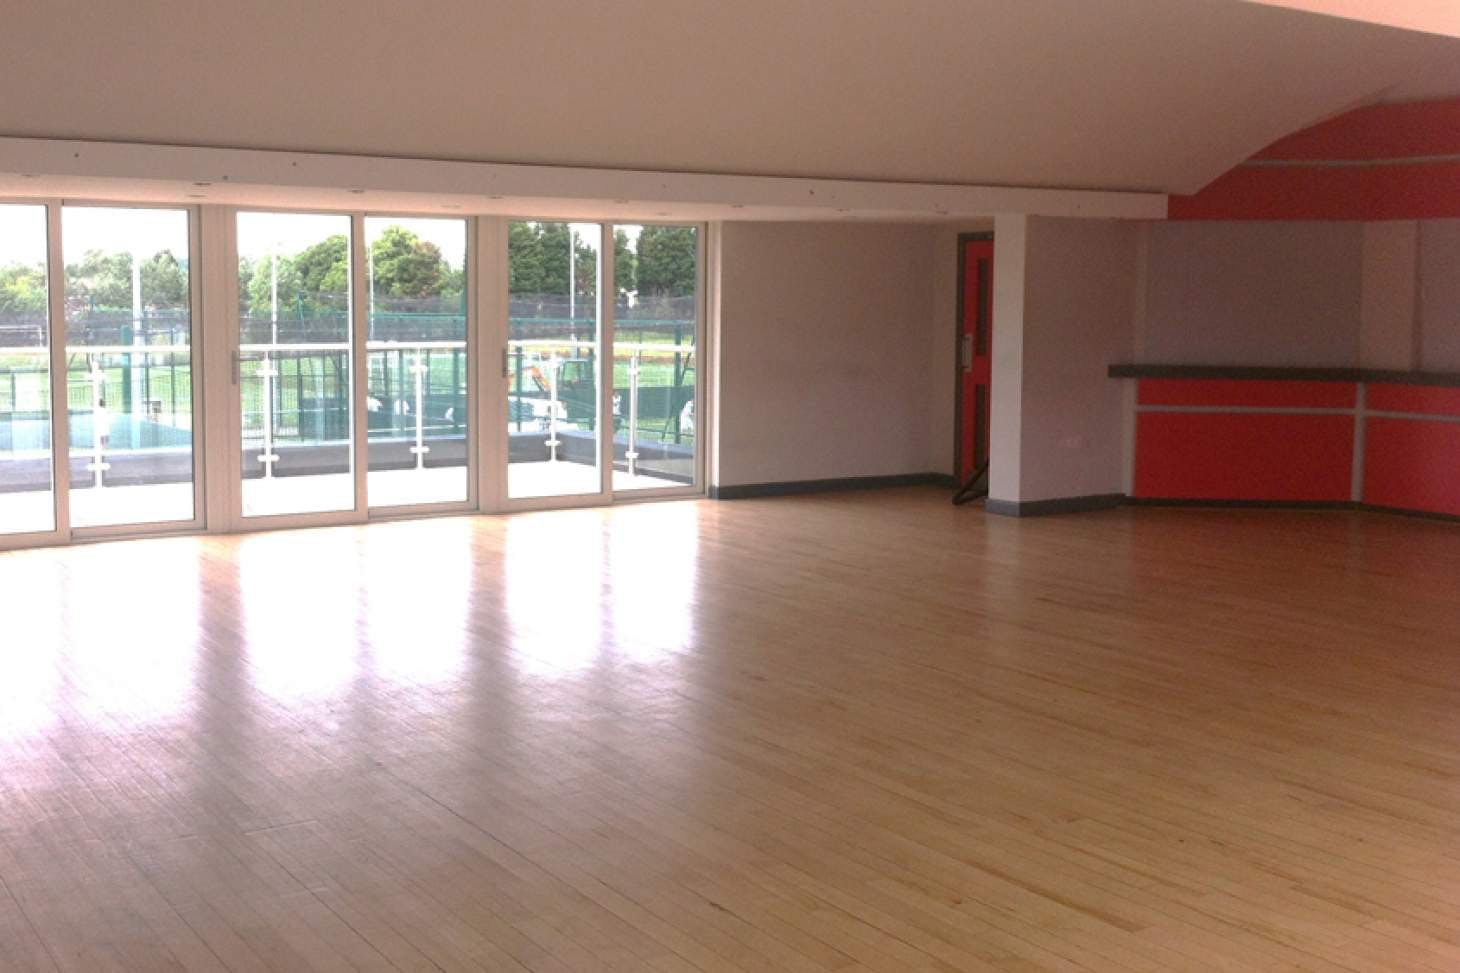 Match Day Centres Classroom space hire